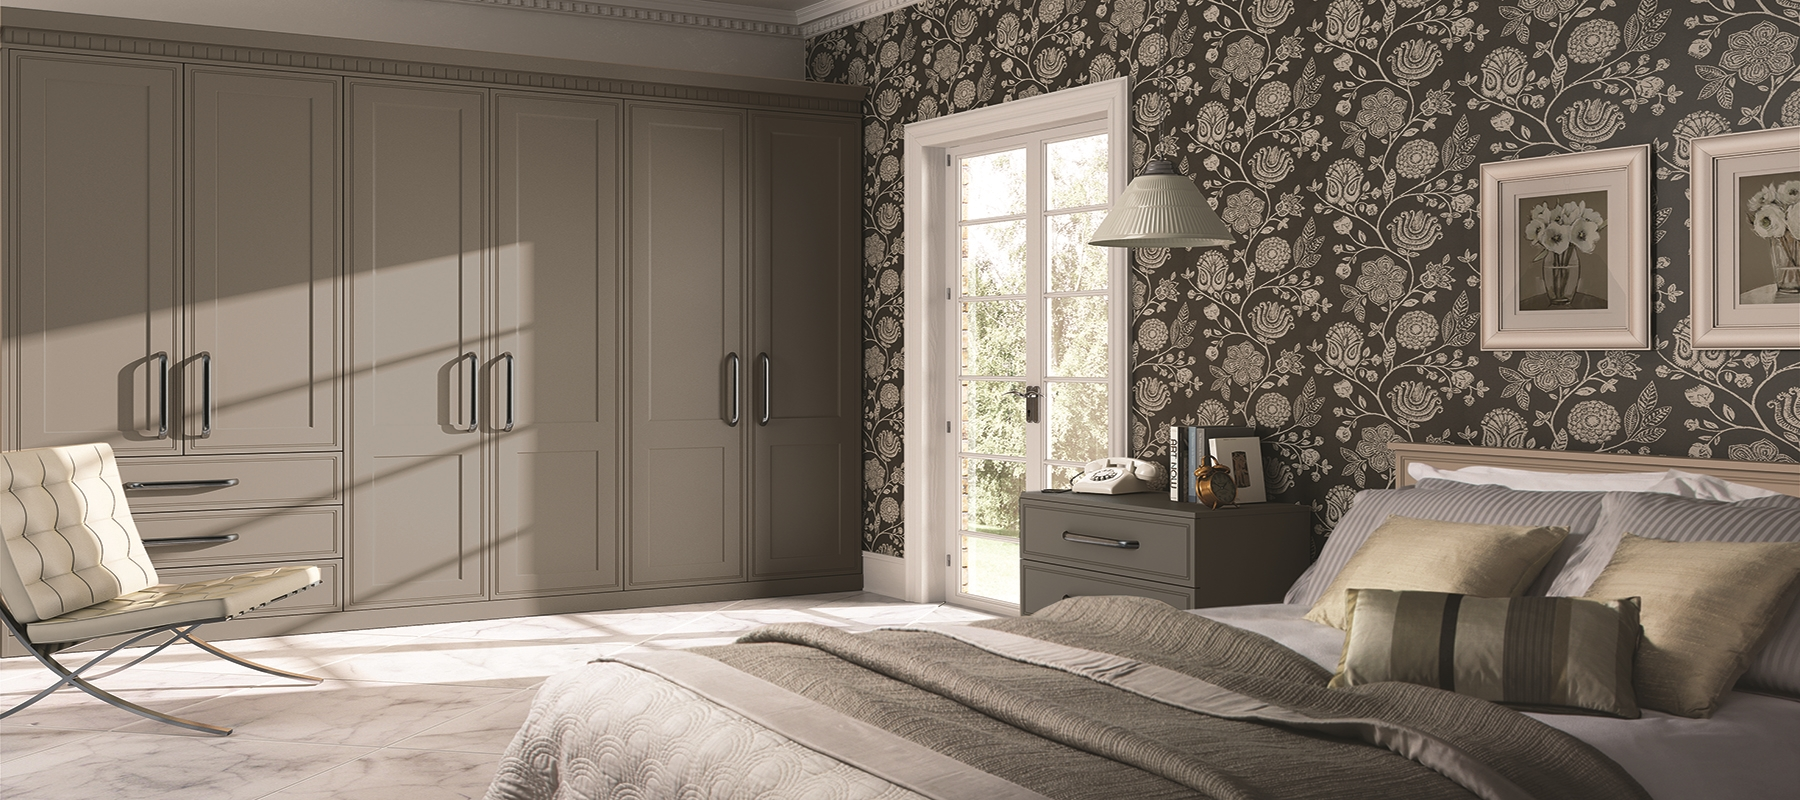 Made to Measure Wardrobe Doors and Accessories & Replacement Wardrobe u0026 Kitchens Doors - Doors Sincerely pezcame.com